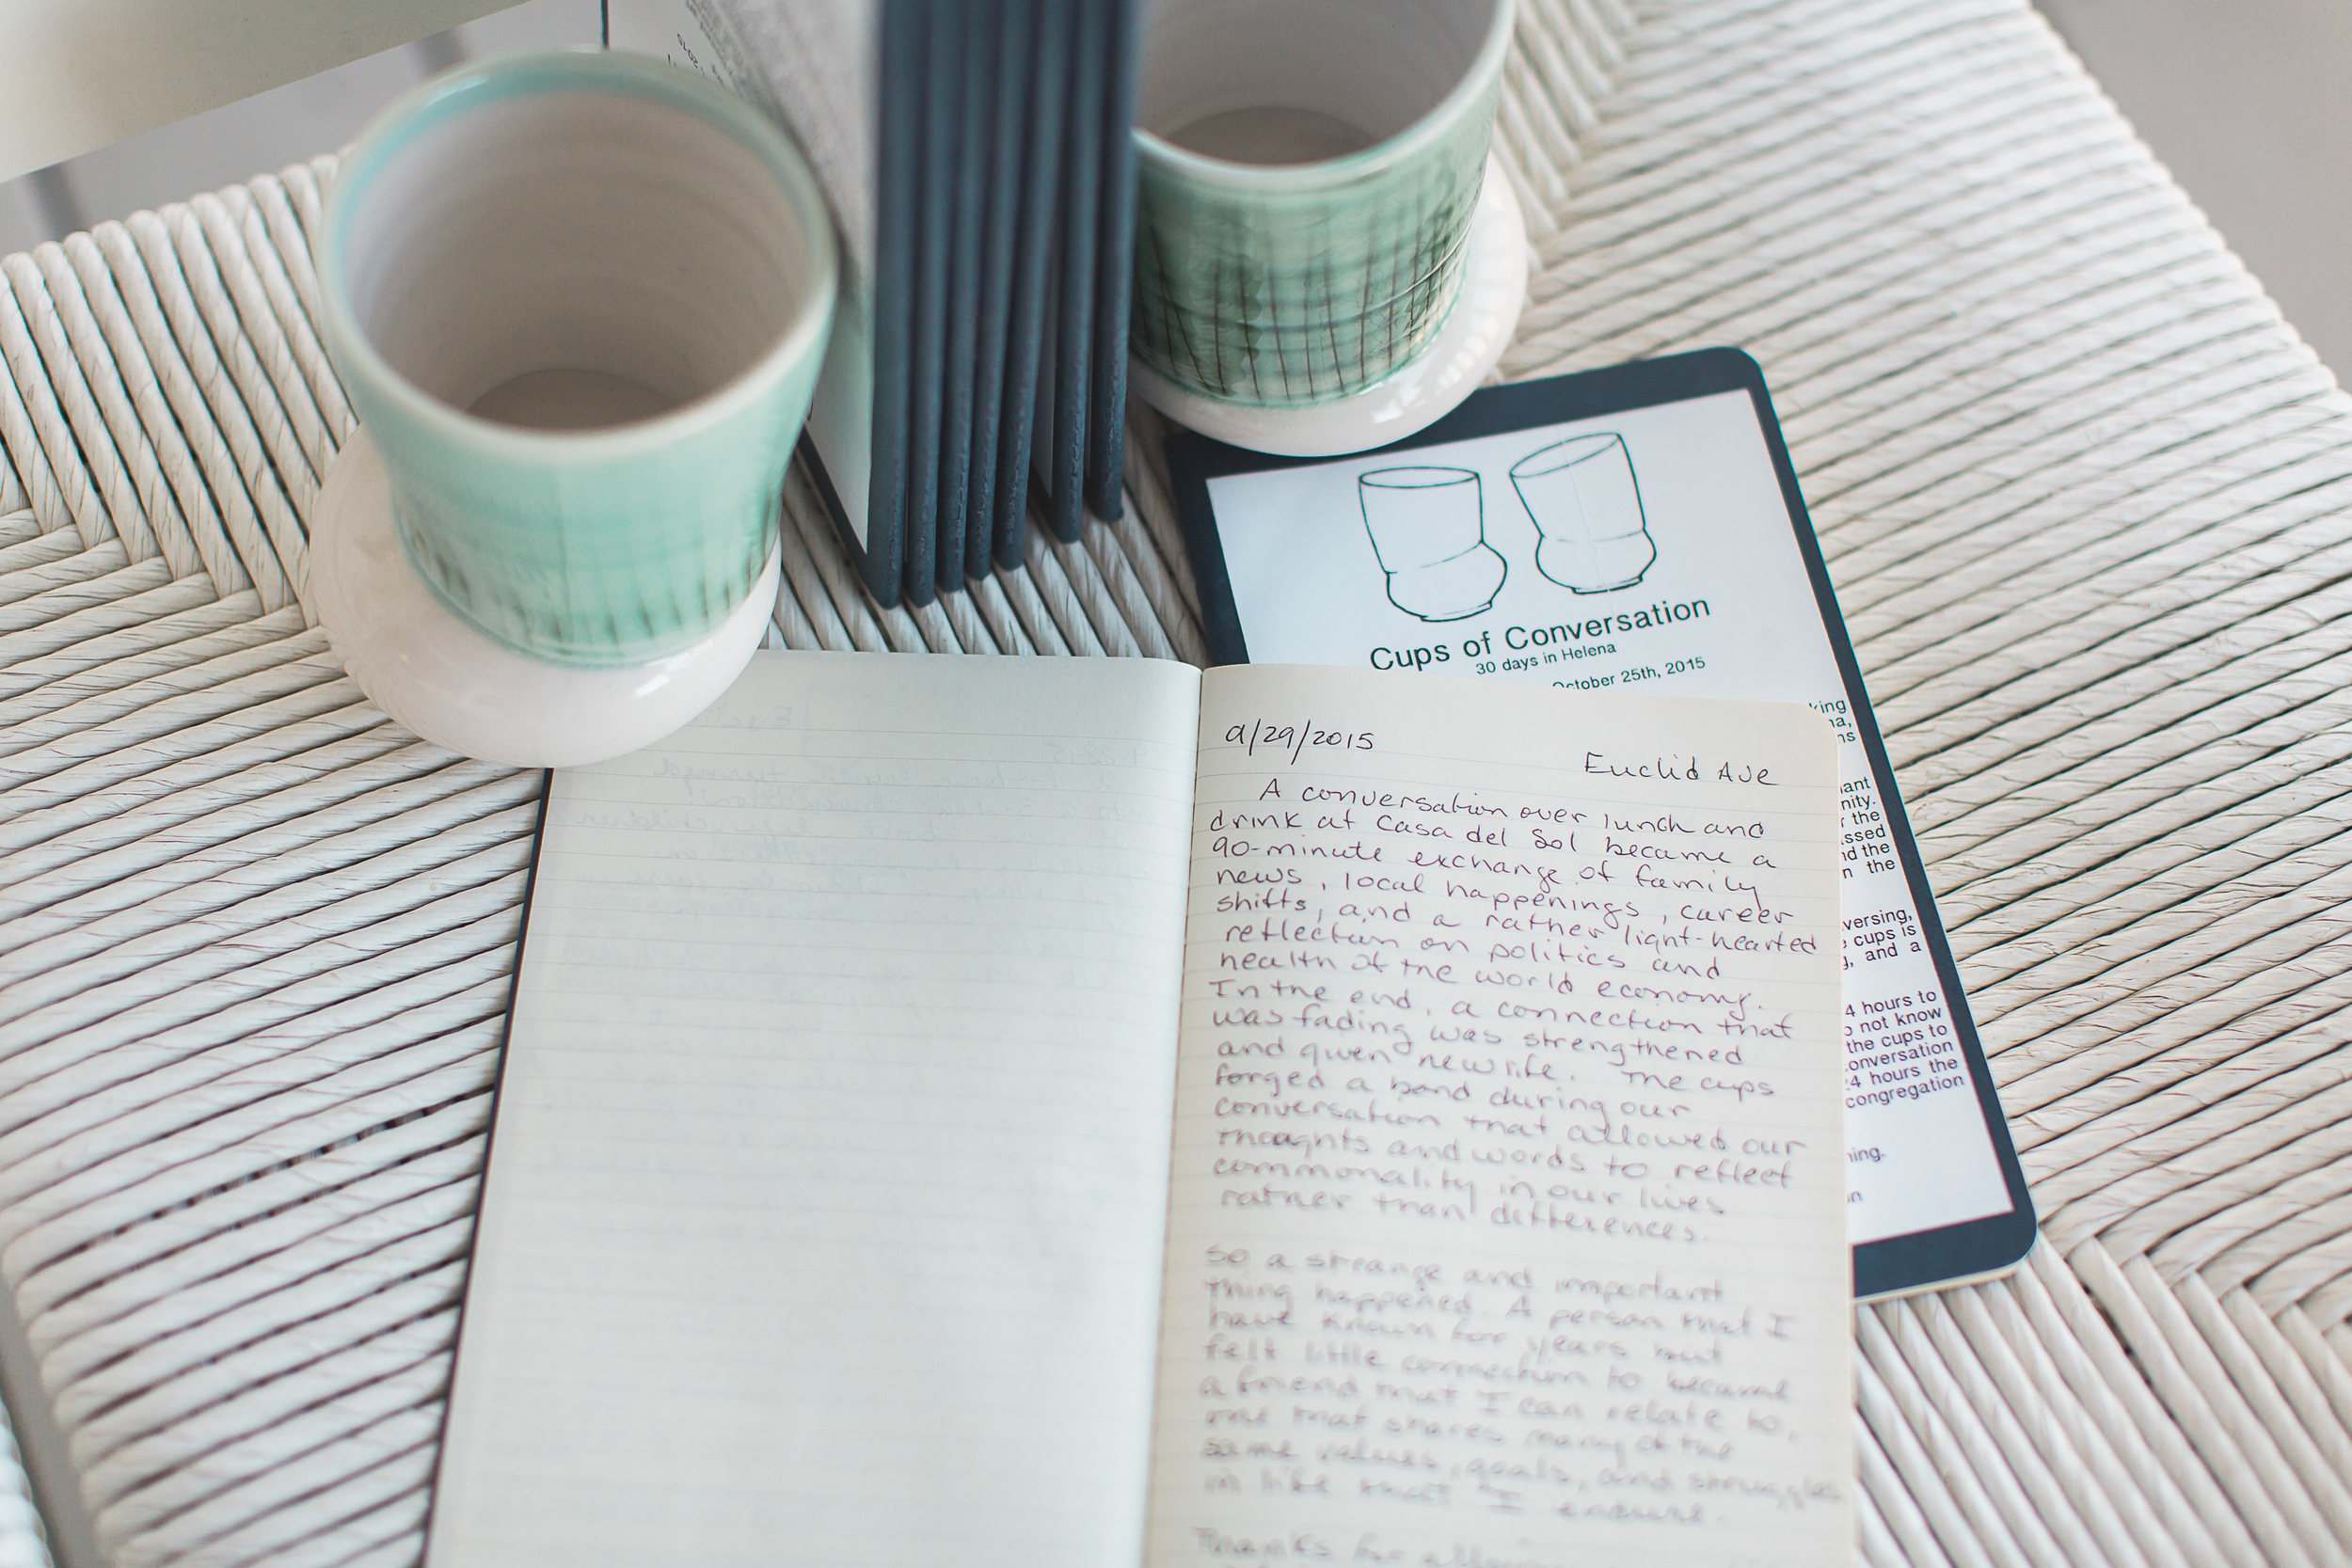 Cups of Conversation, Helena, MT (cups and journal).jpg